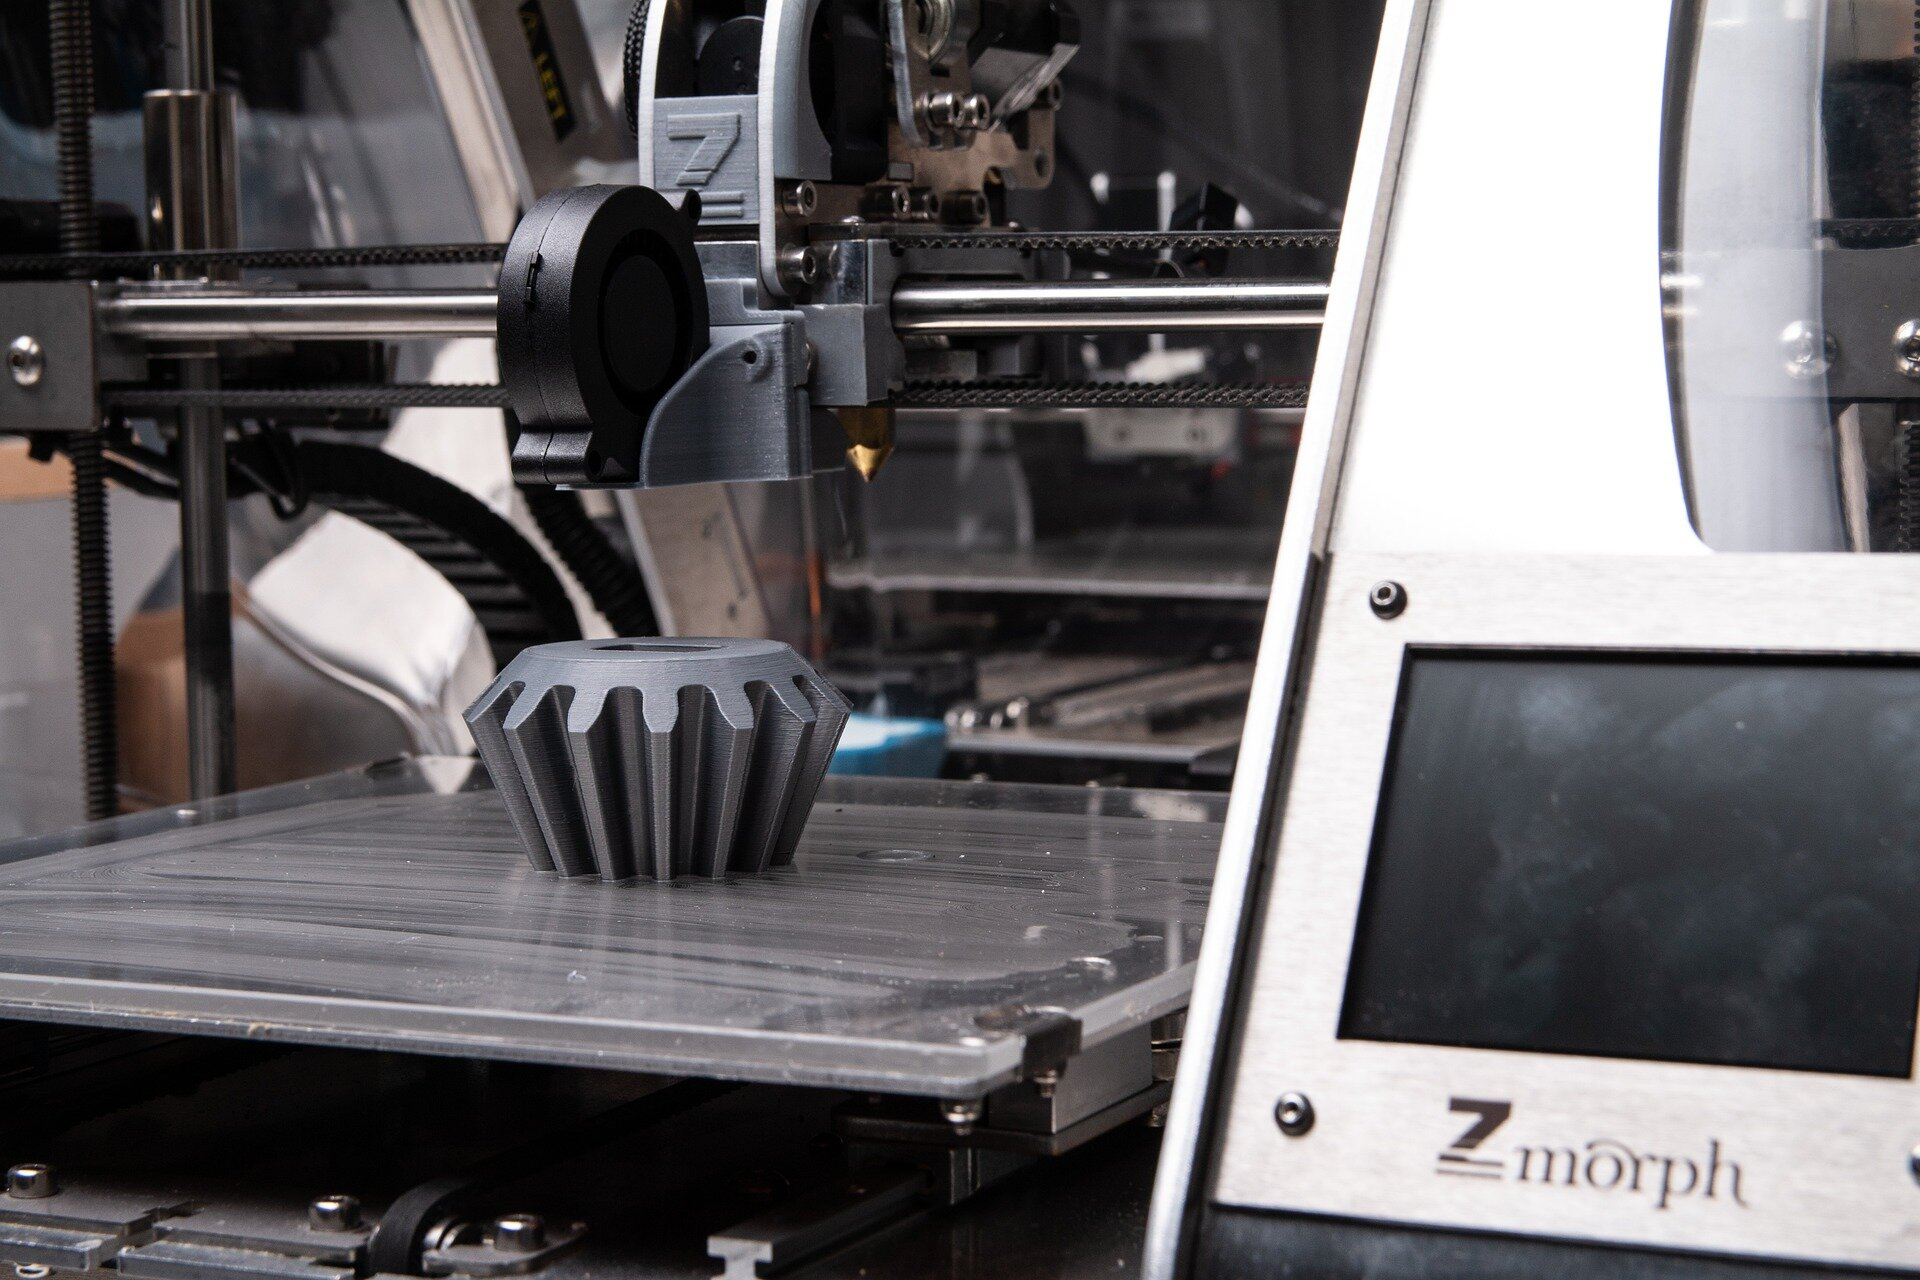 Large-scale 3D printing with multimaterials and recycled composites